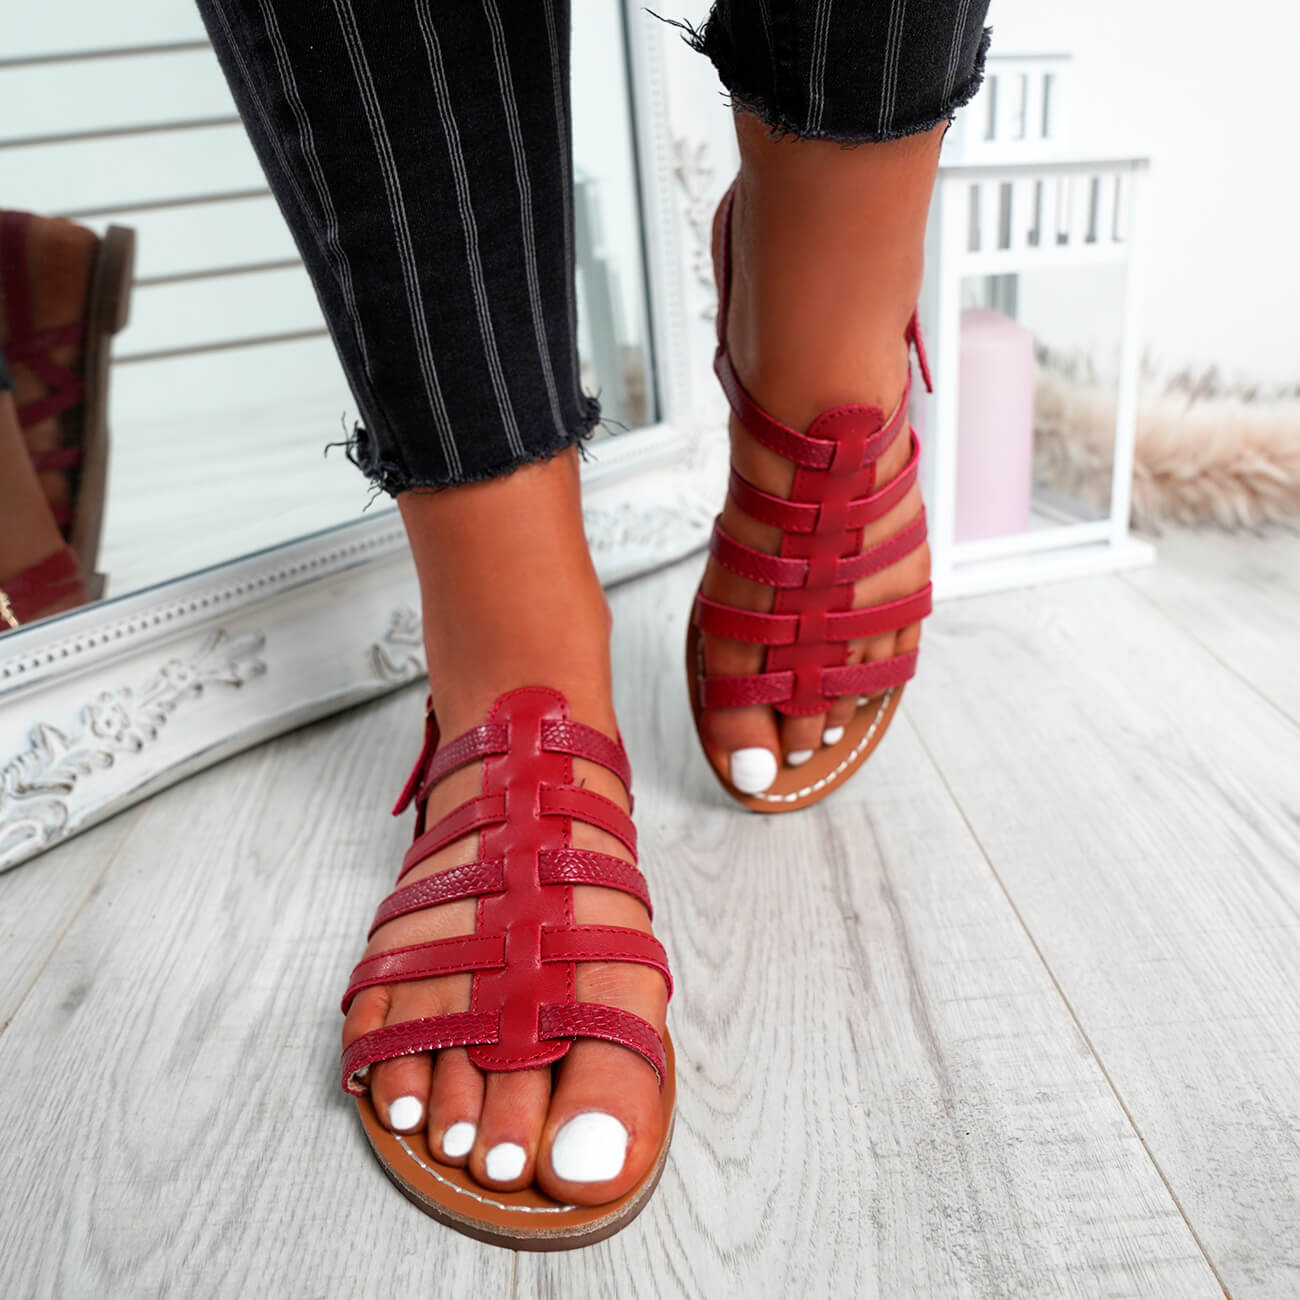 WOMENS-LADIES-BUCKLE-STRAP-FLAT-SUMMER-SANDALS-CASUAL-HOLIDAY-COMFY-SHOES-SIZE thumbnail 27